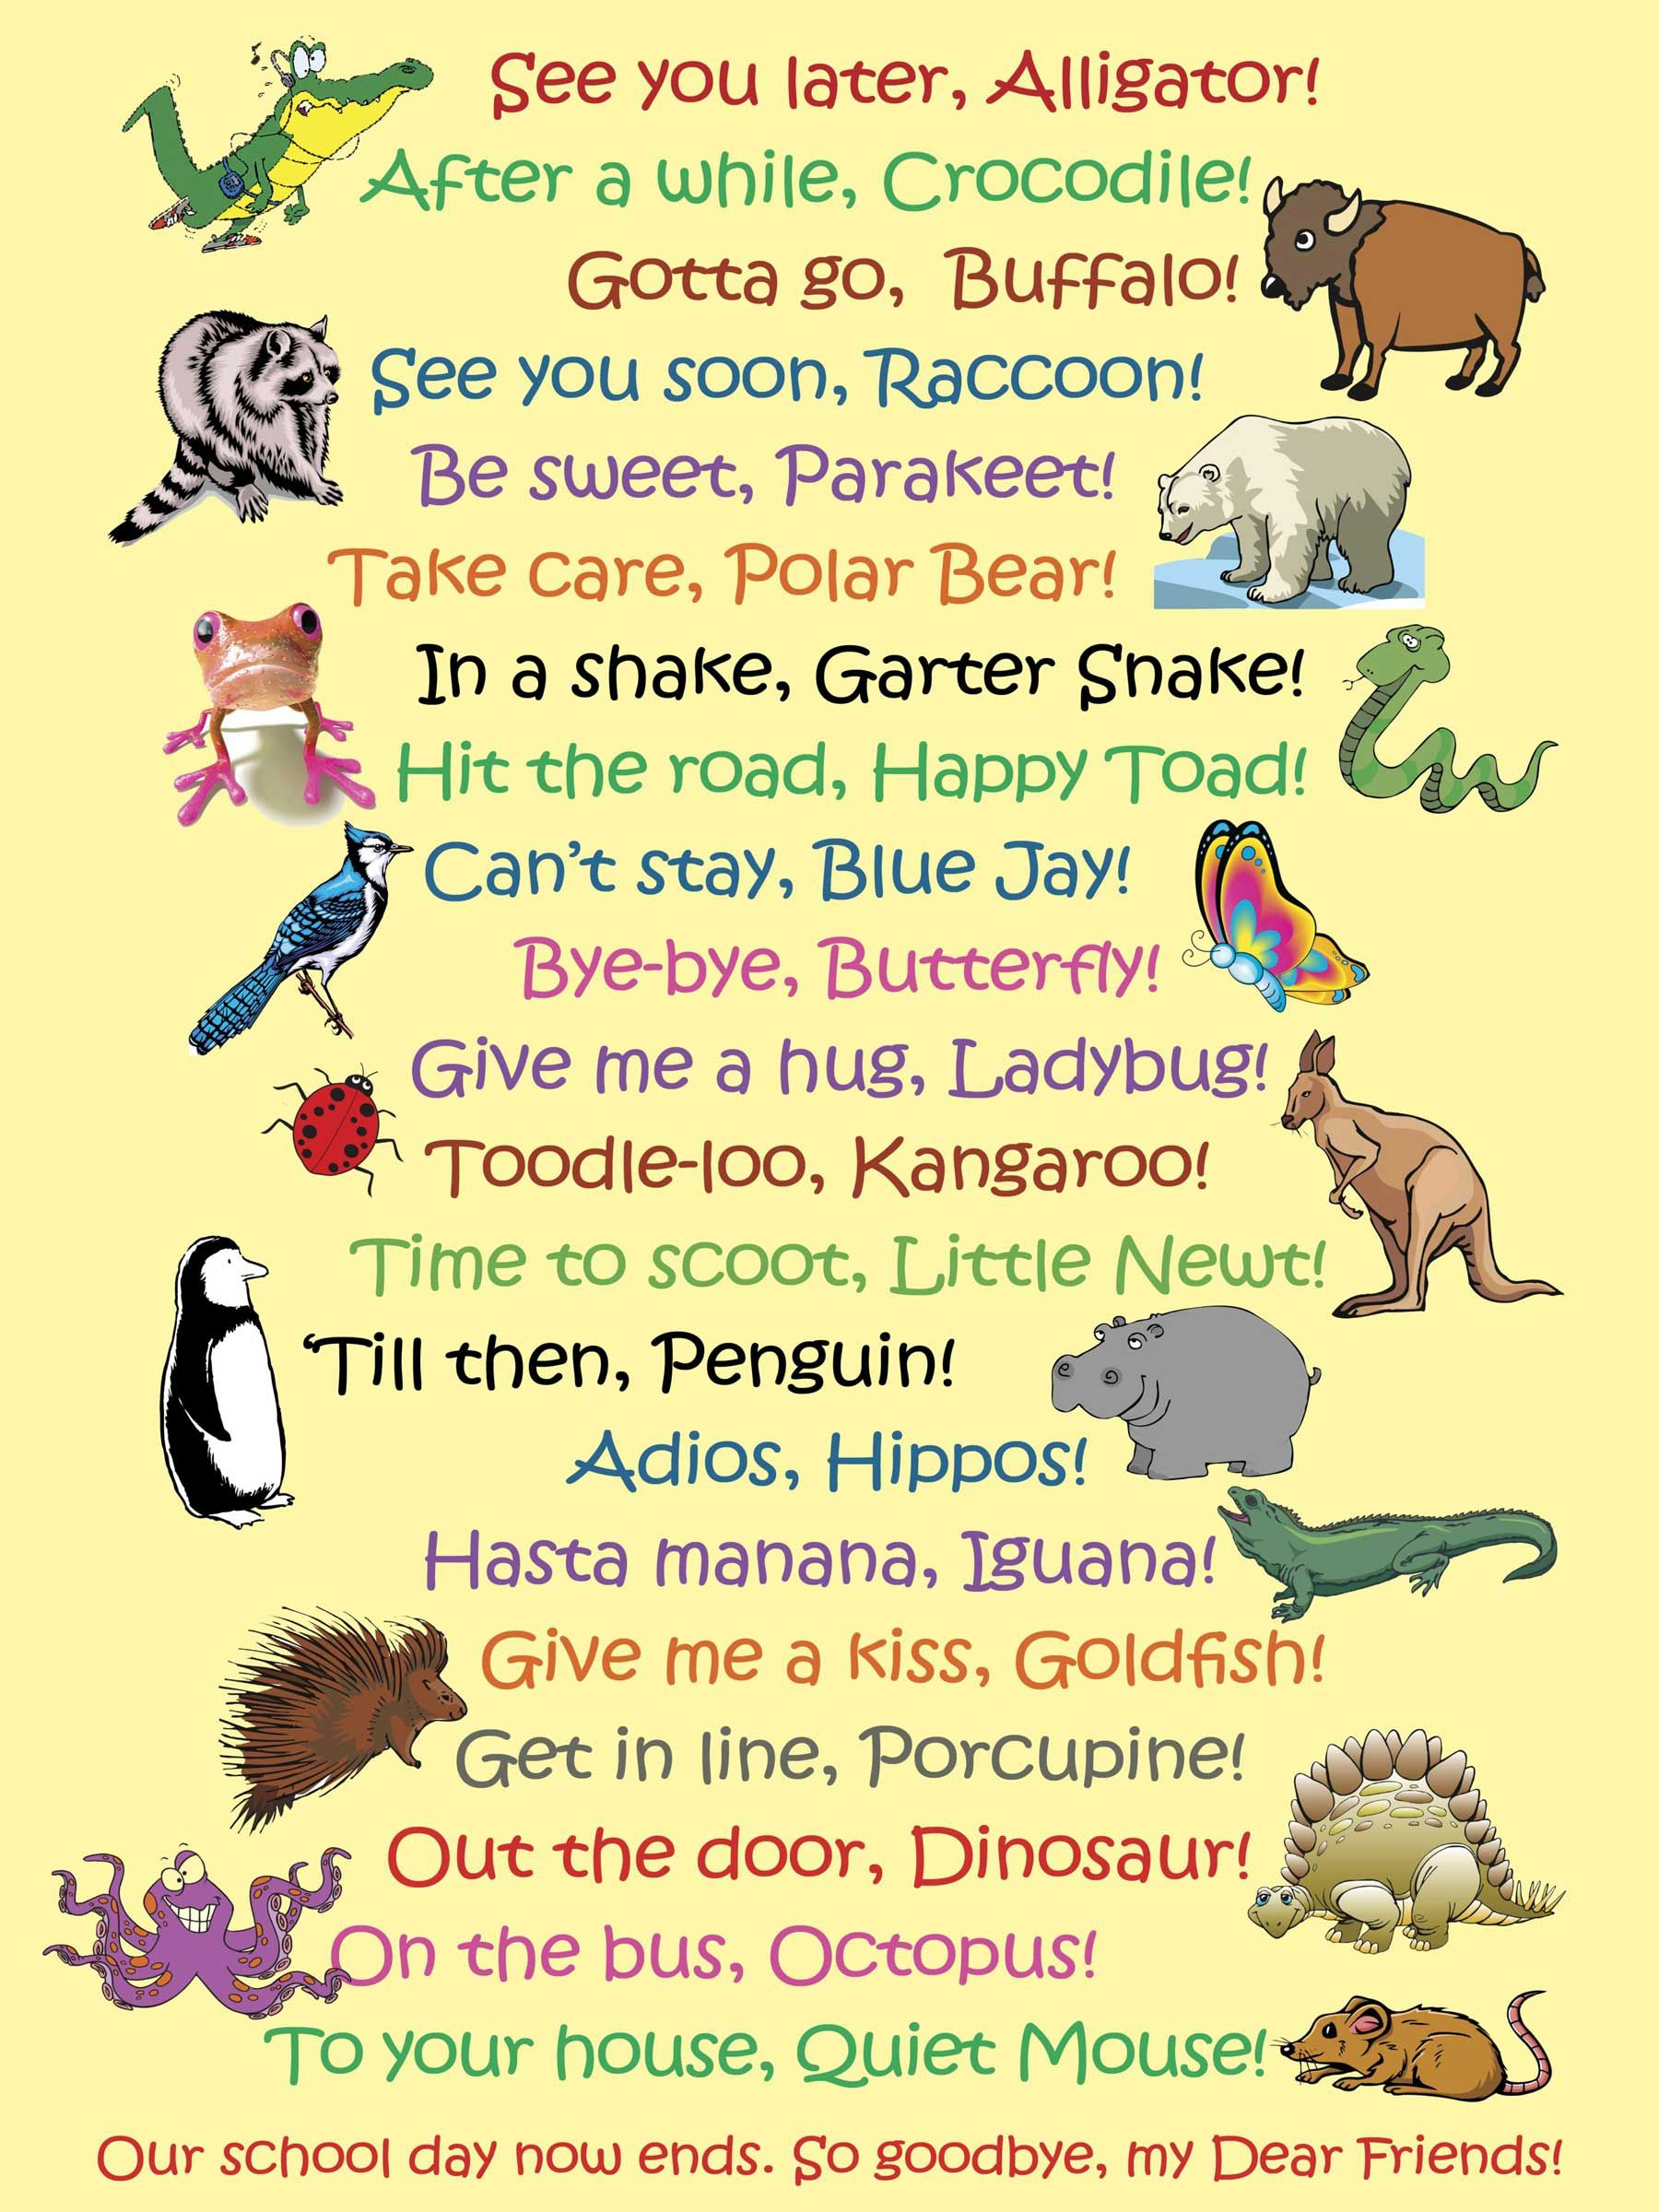 See You Later Alligator! Printable At 30% Size To Fit One Sheet - See You Later Alligator Free Printable